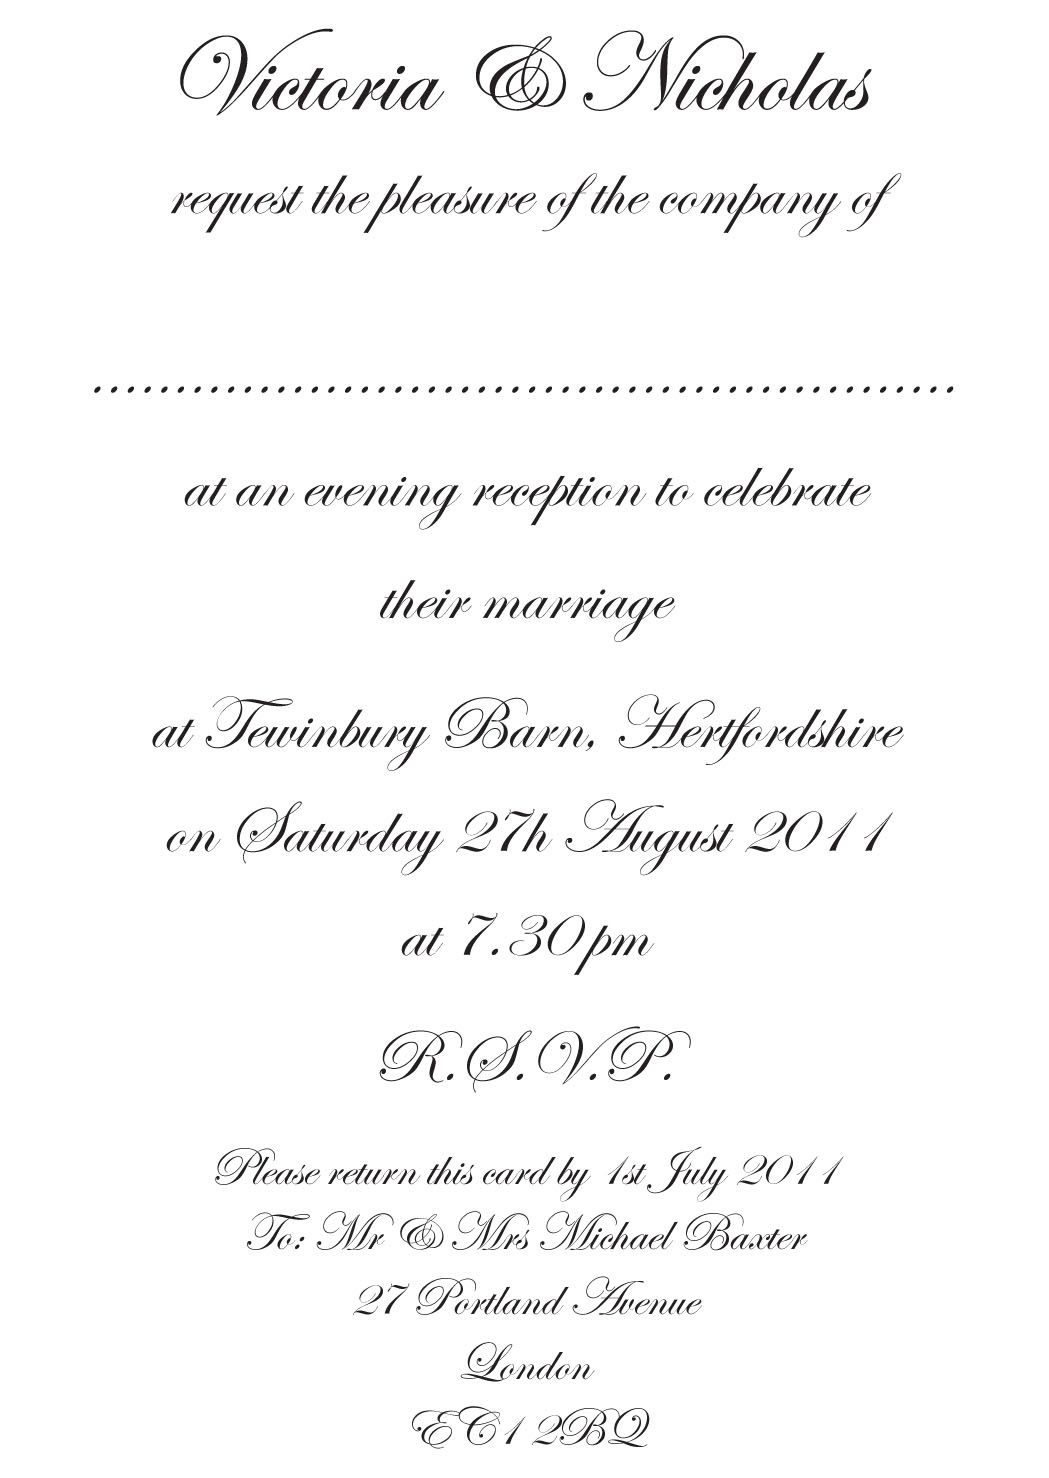 wedding invitation message2 | Wedding | Pinterest | Invitation ...